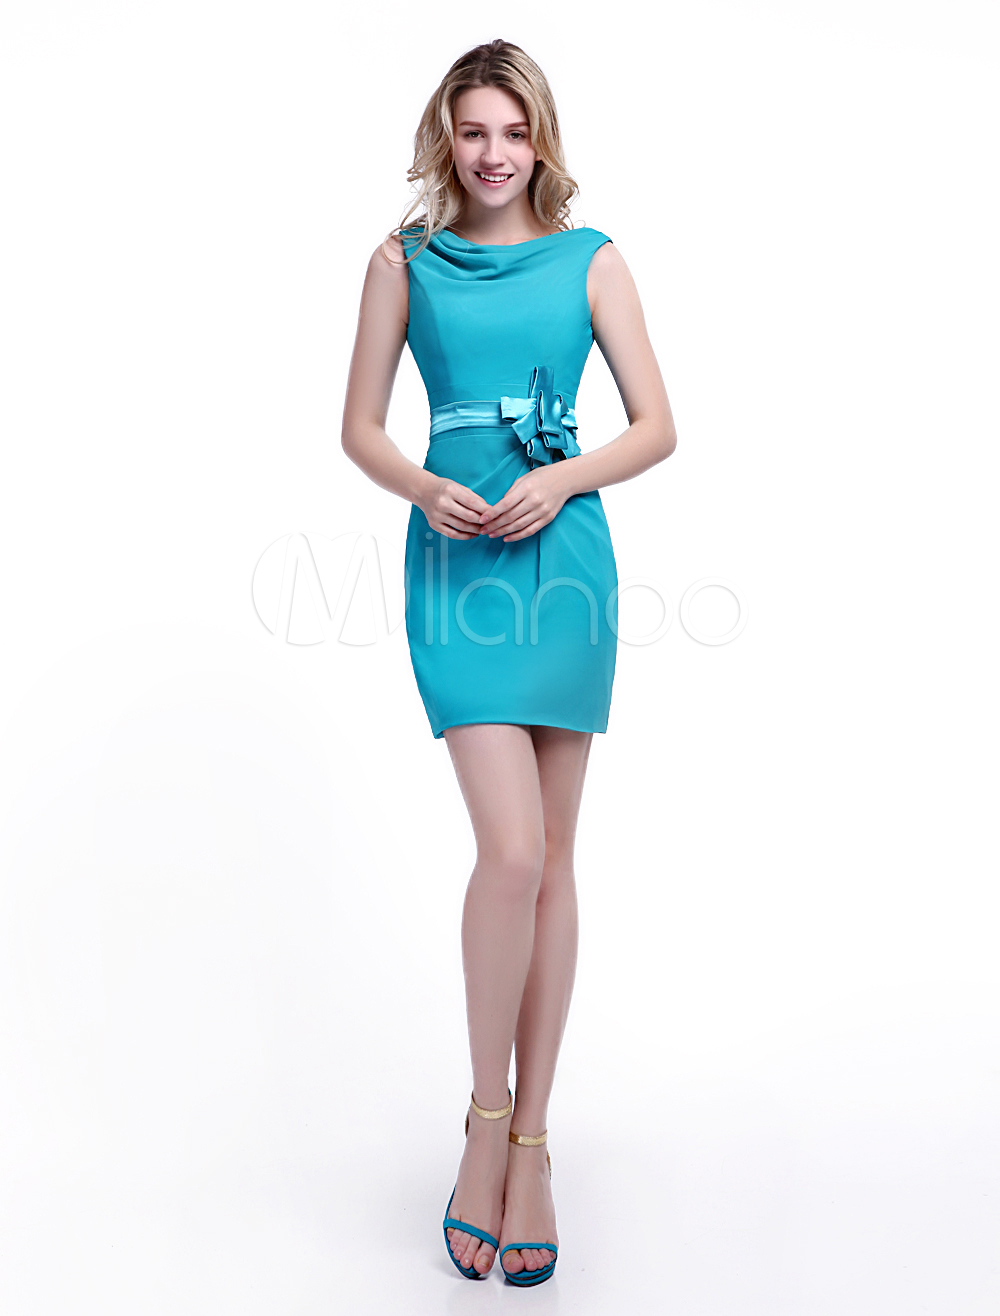 Turquoise Bridesmaid Dress Satin Bow Sash Cocktail Dress Cowl Neck Sleeveless Sheath Short Party Dress Wedding Guest Dress Milanoo